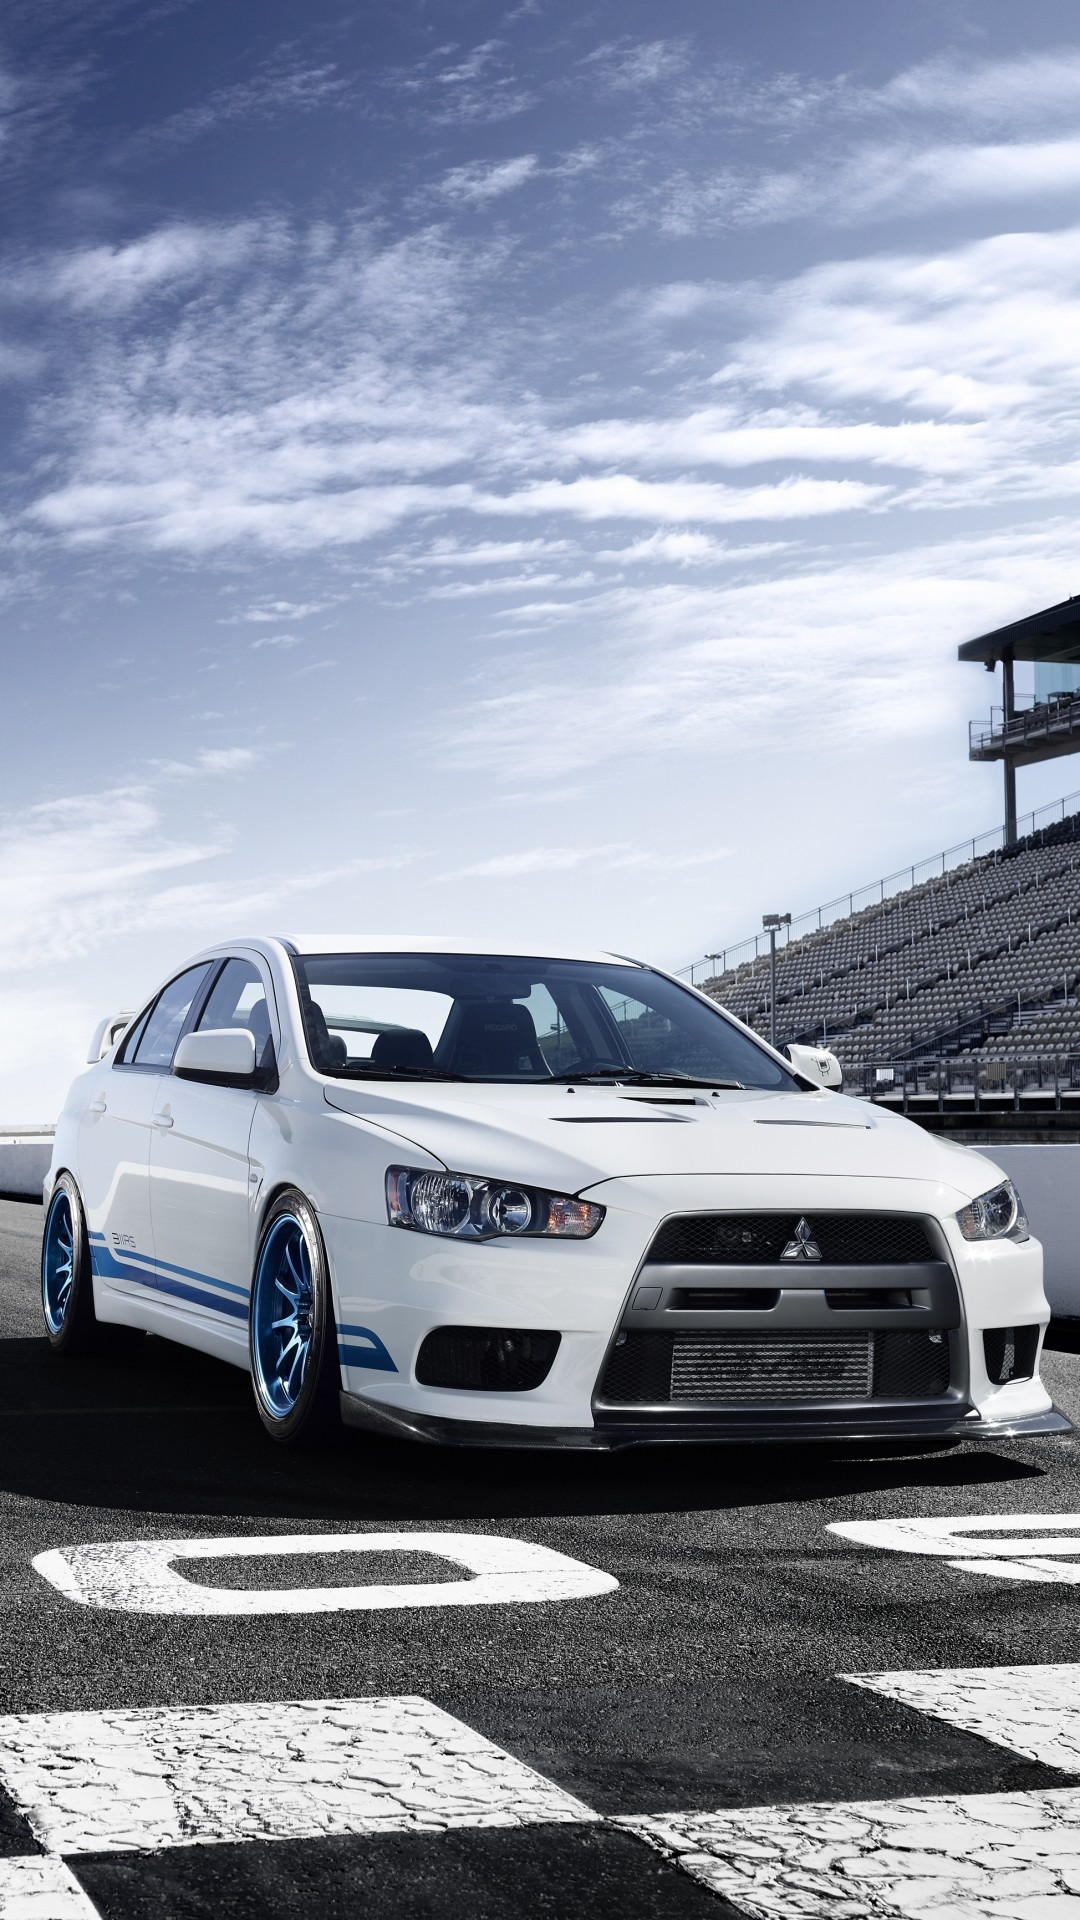 1080x1920 Vehicles / Mitsubishi Evolution X () Mobile Wallpaper. Wallpaper  588057